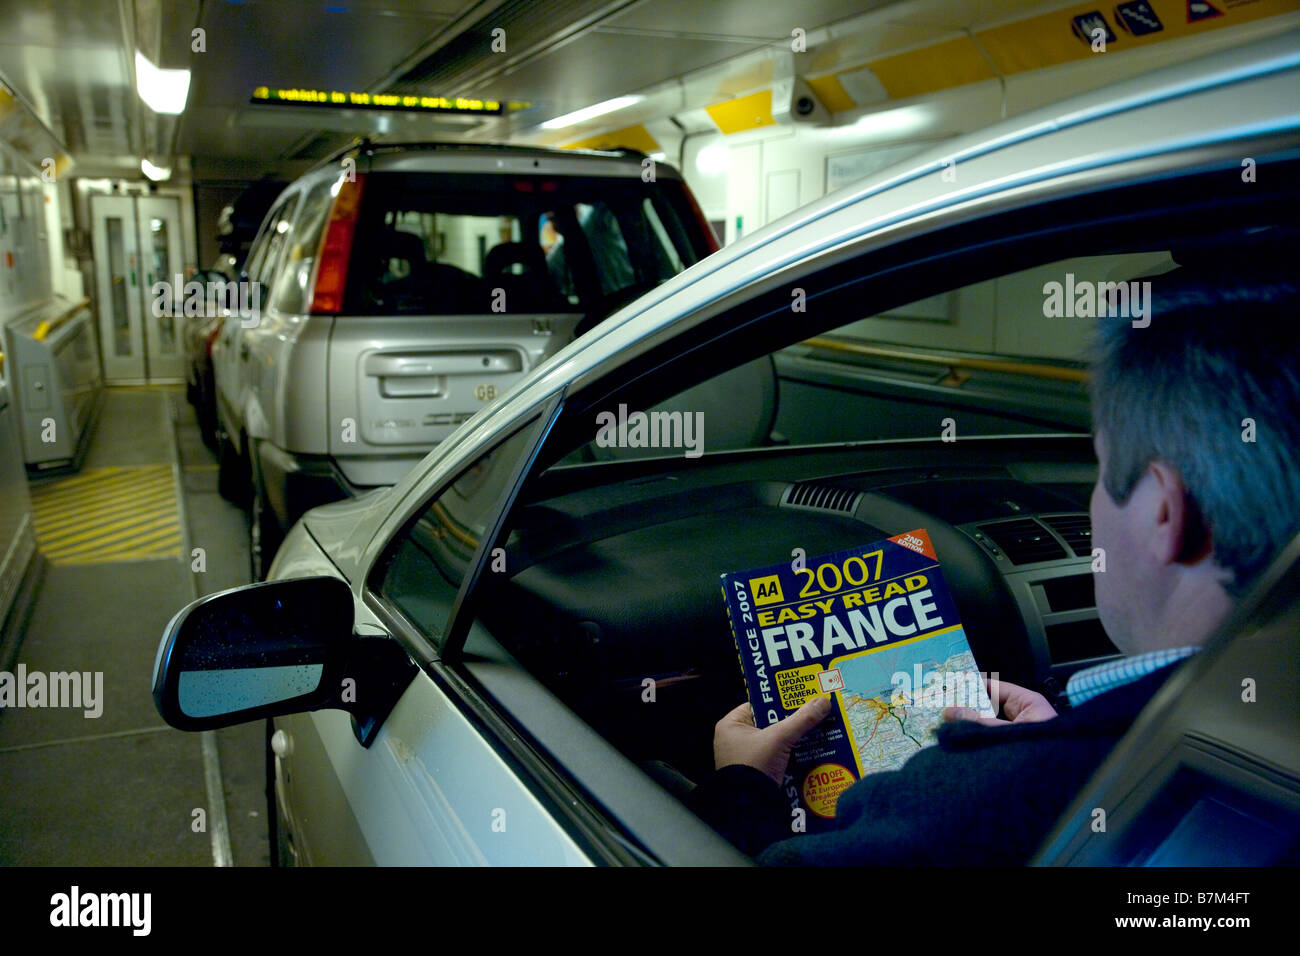 Cars inside channel tunnel train with man looking at